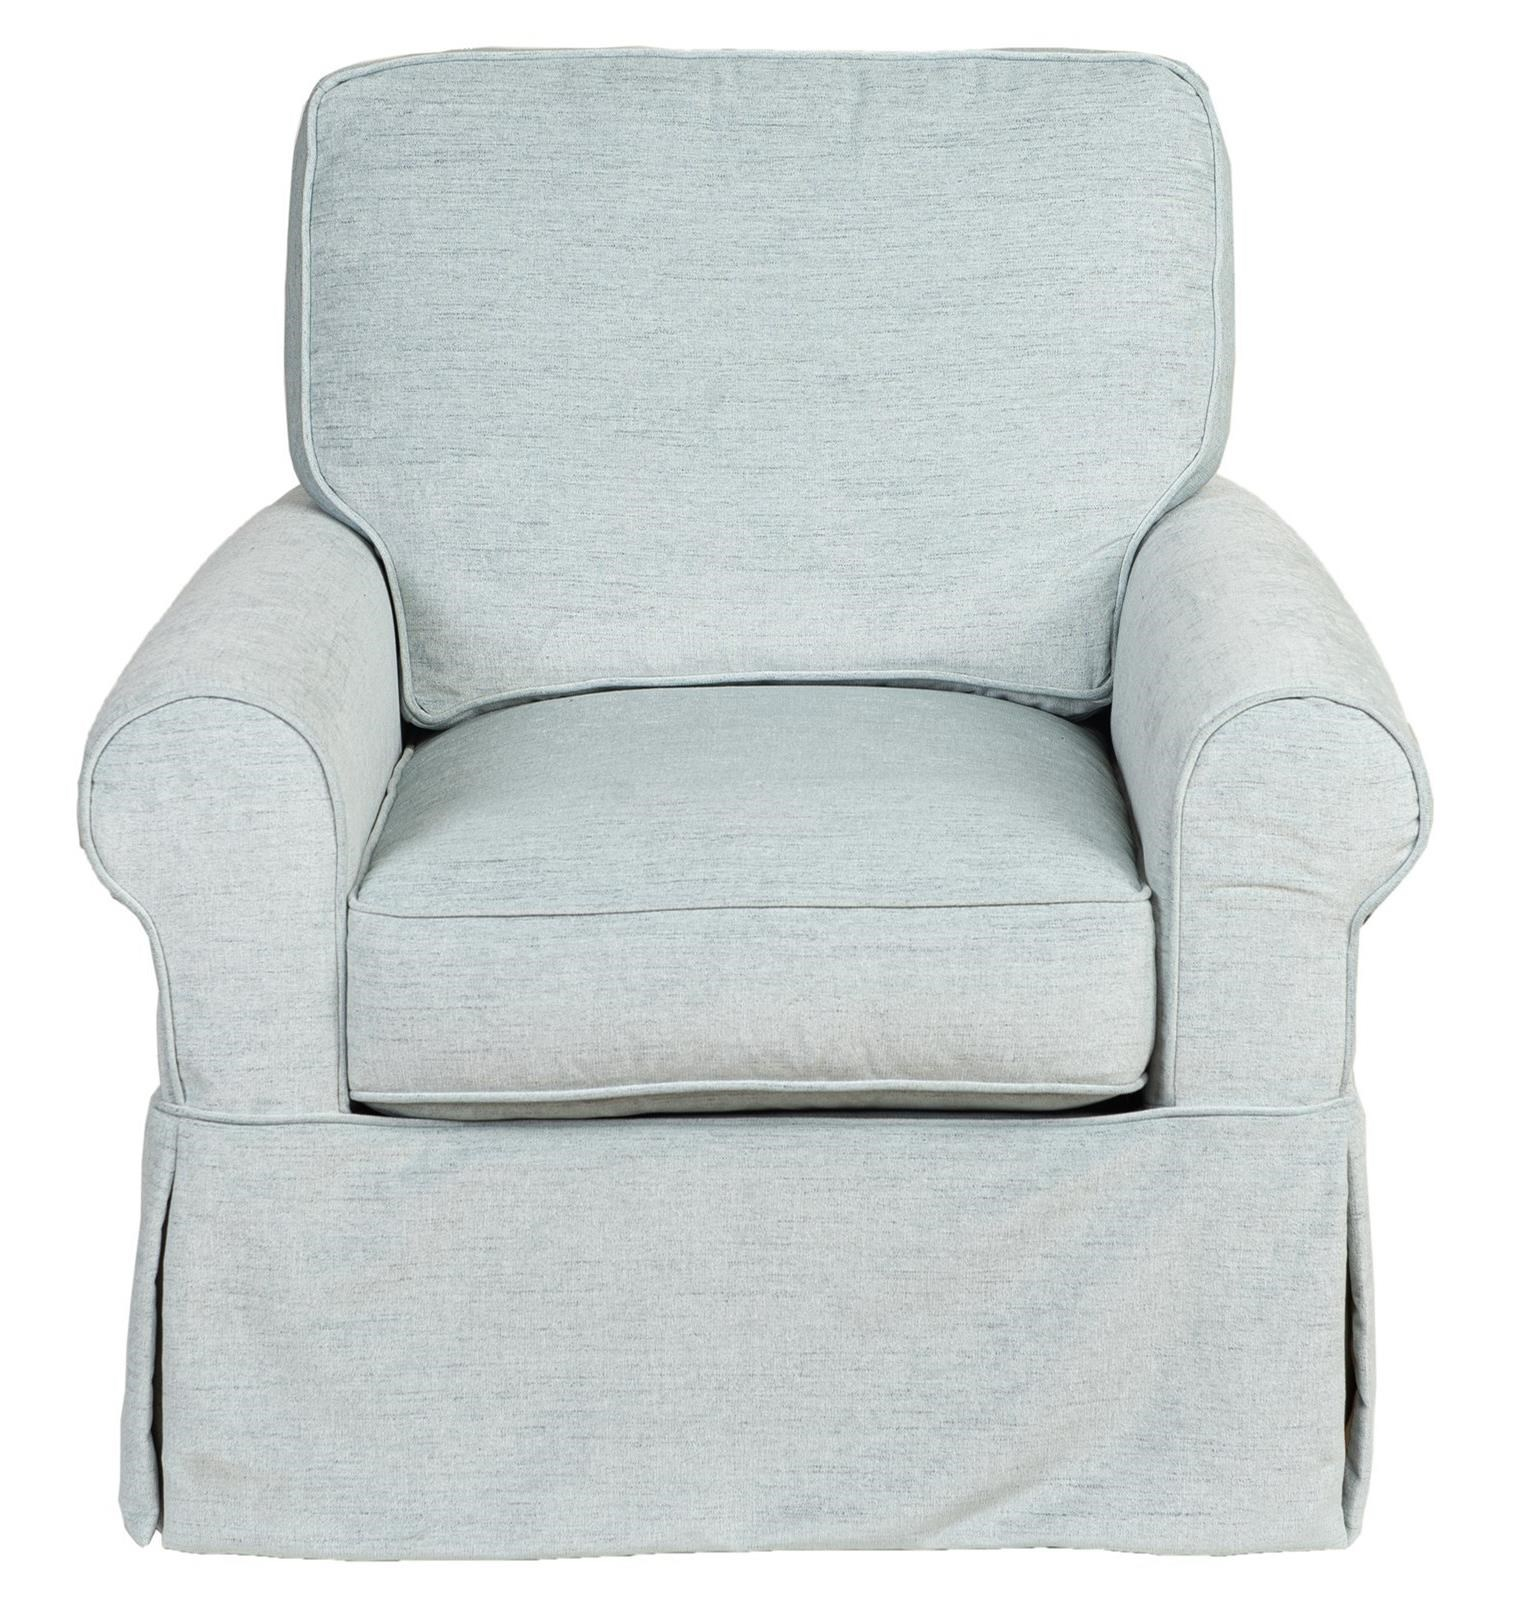 1149 Upholstered Chair by Synergy Home Furnishings at Johnny Janosik